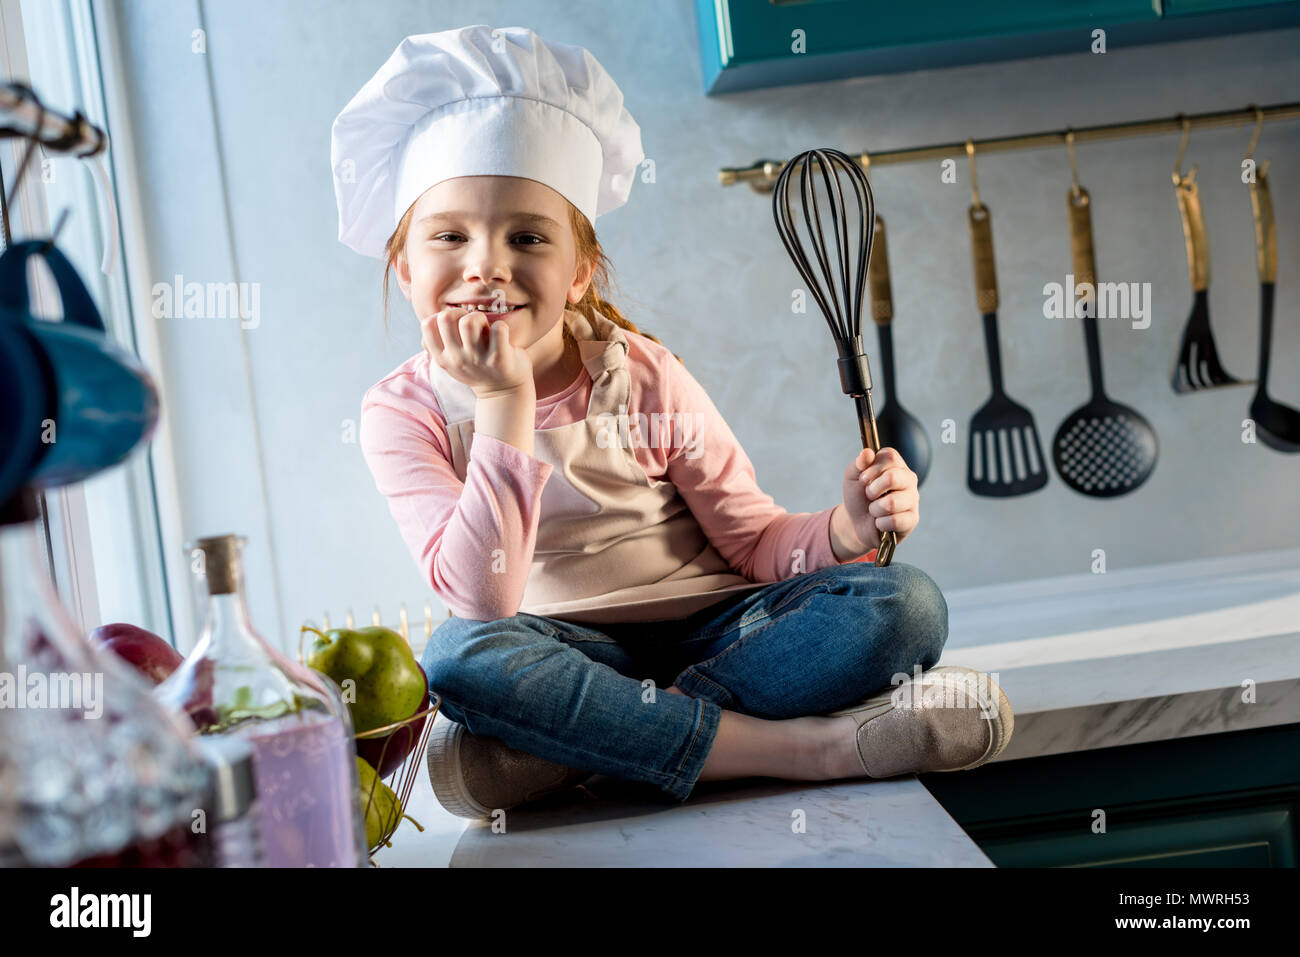 cute child in chef hat holding whisk and smiling at camera in kitchen Stock Photo